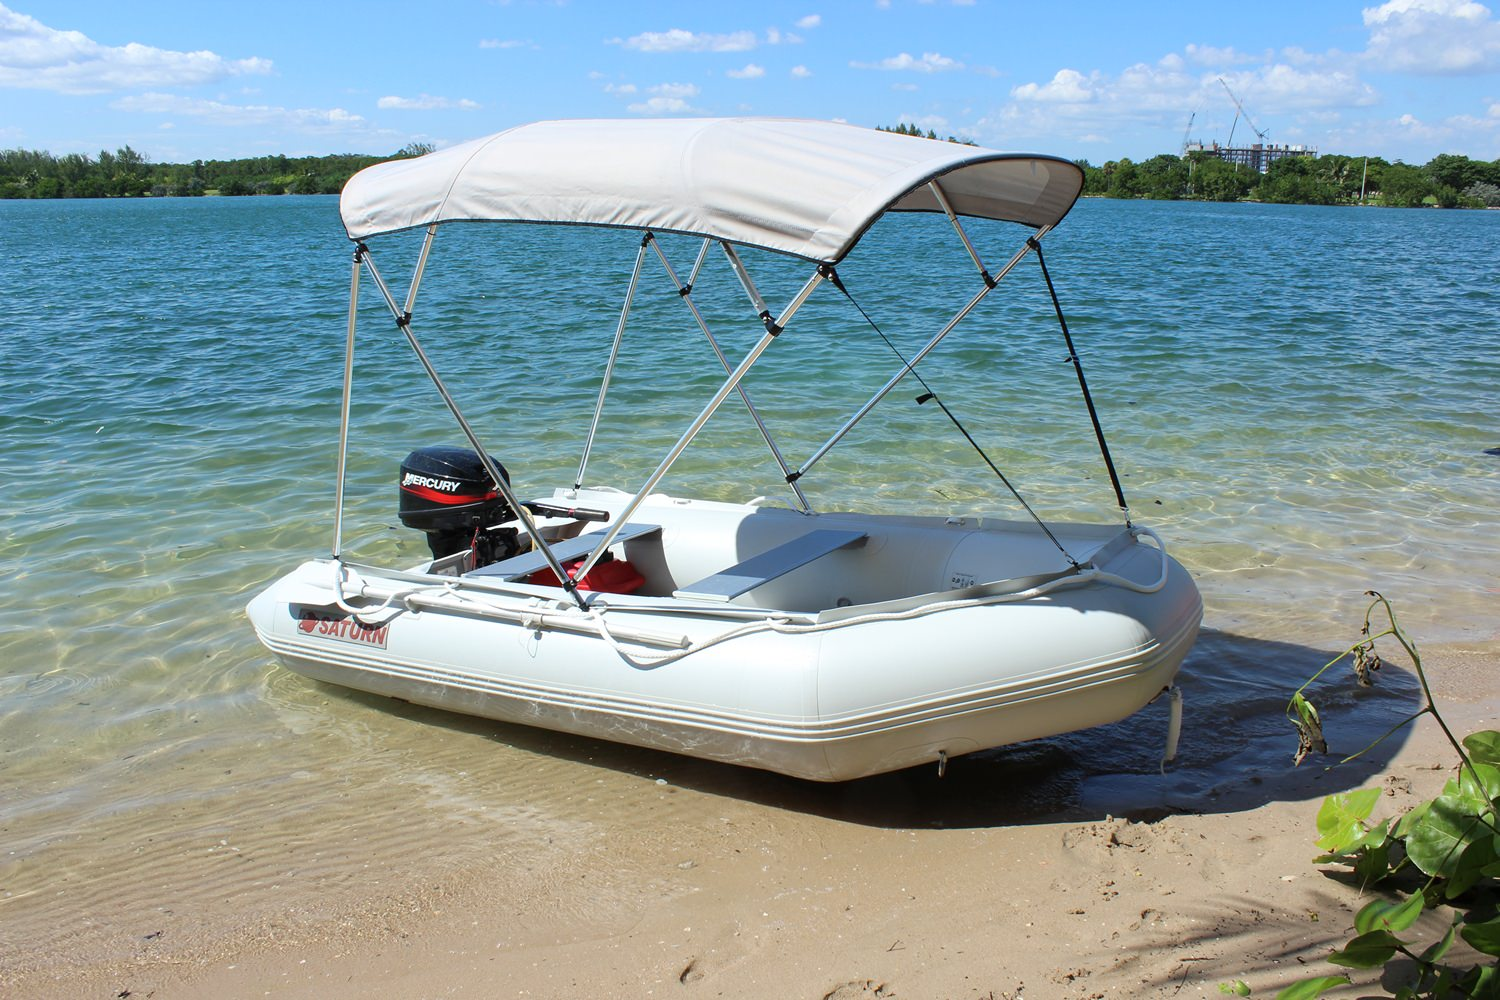 2016 11' Inflatable Boat, Dinghy, Tender - w/ Drop Stitch ...